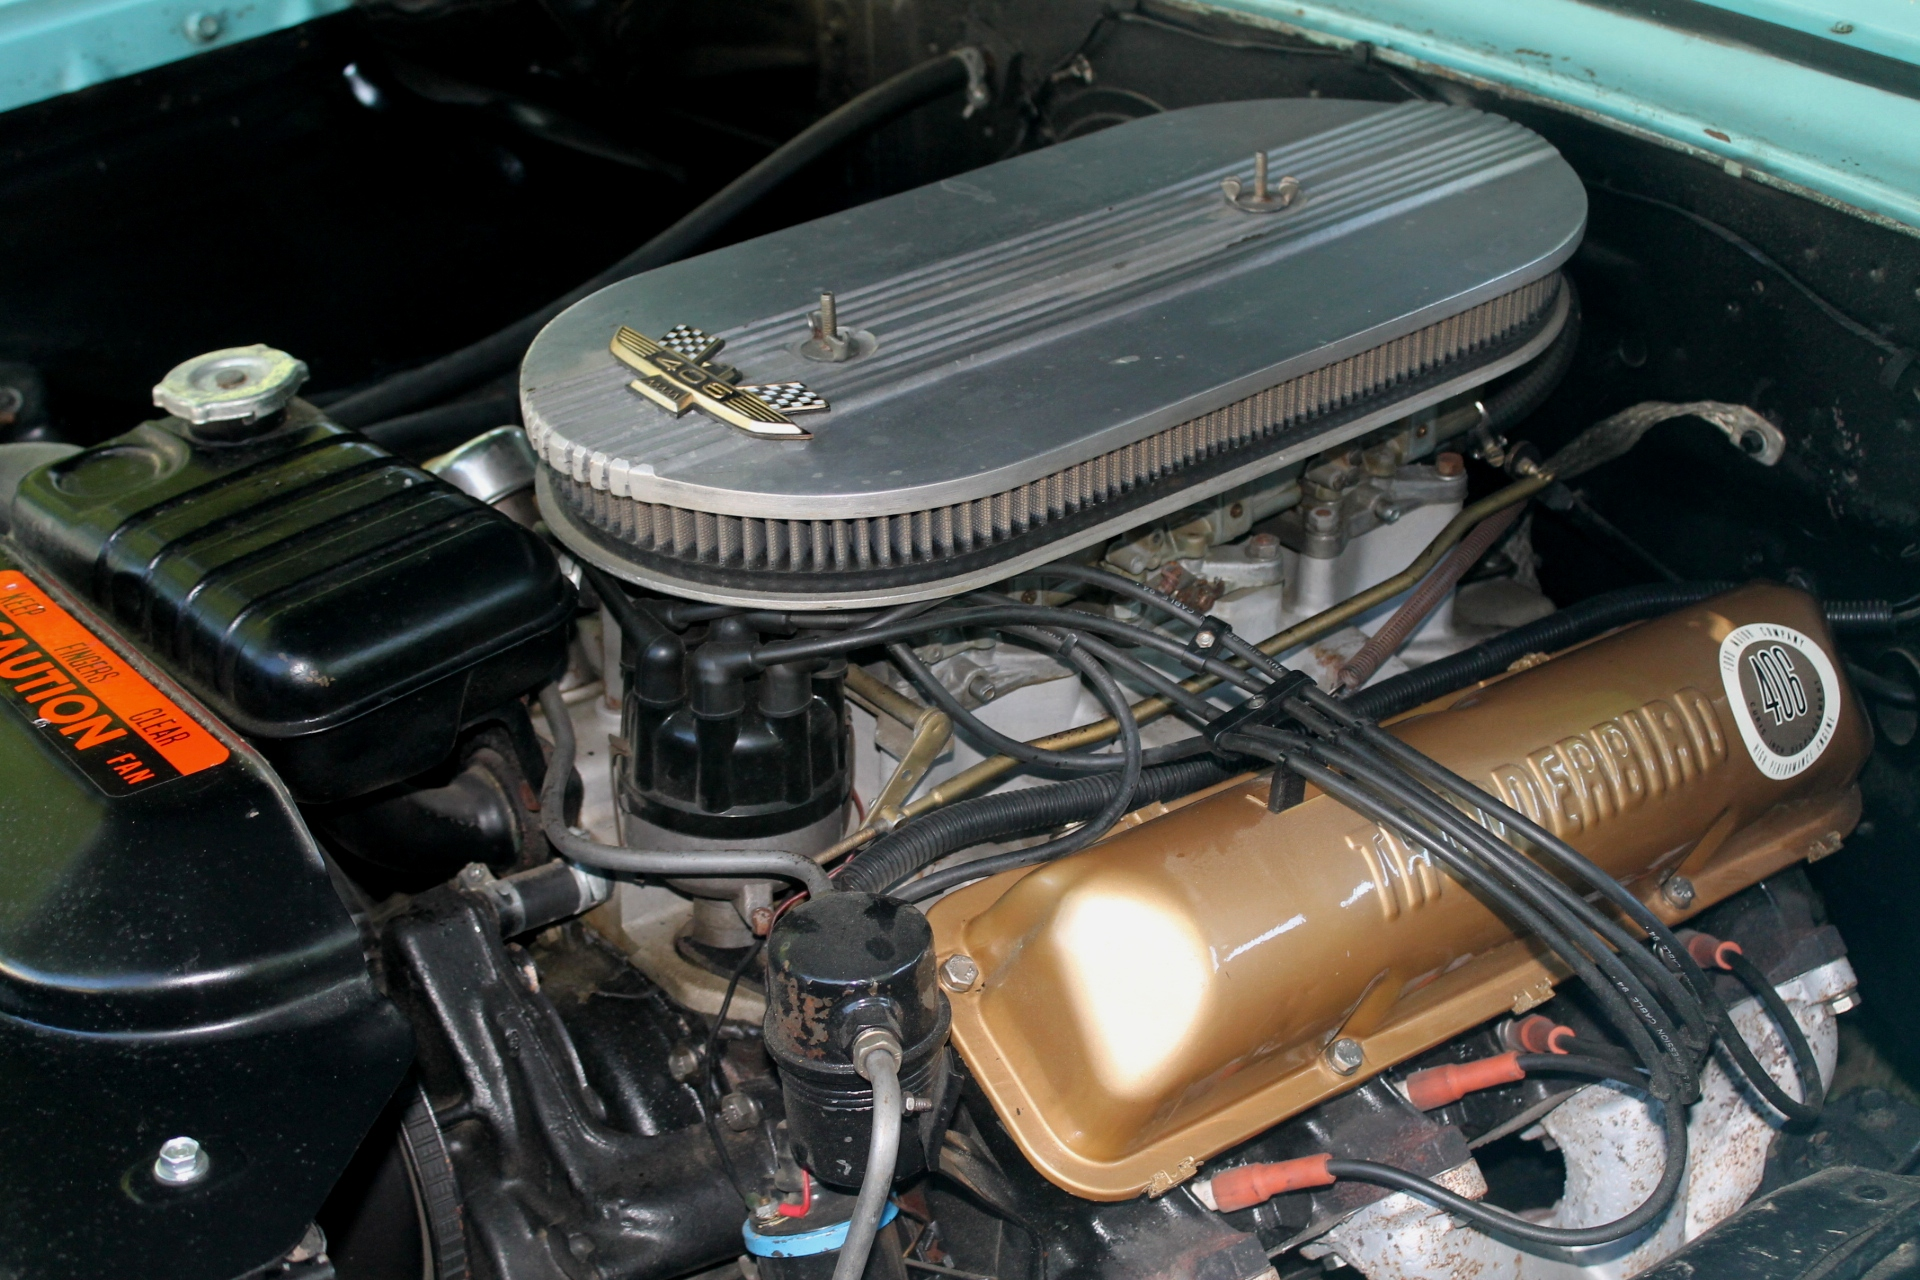 1963 Ford Galaxie 500 With The 406 Engine |